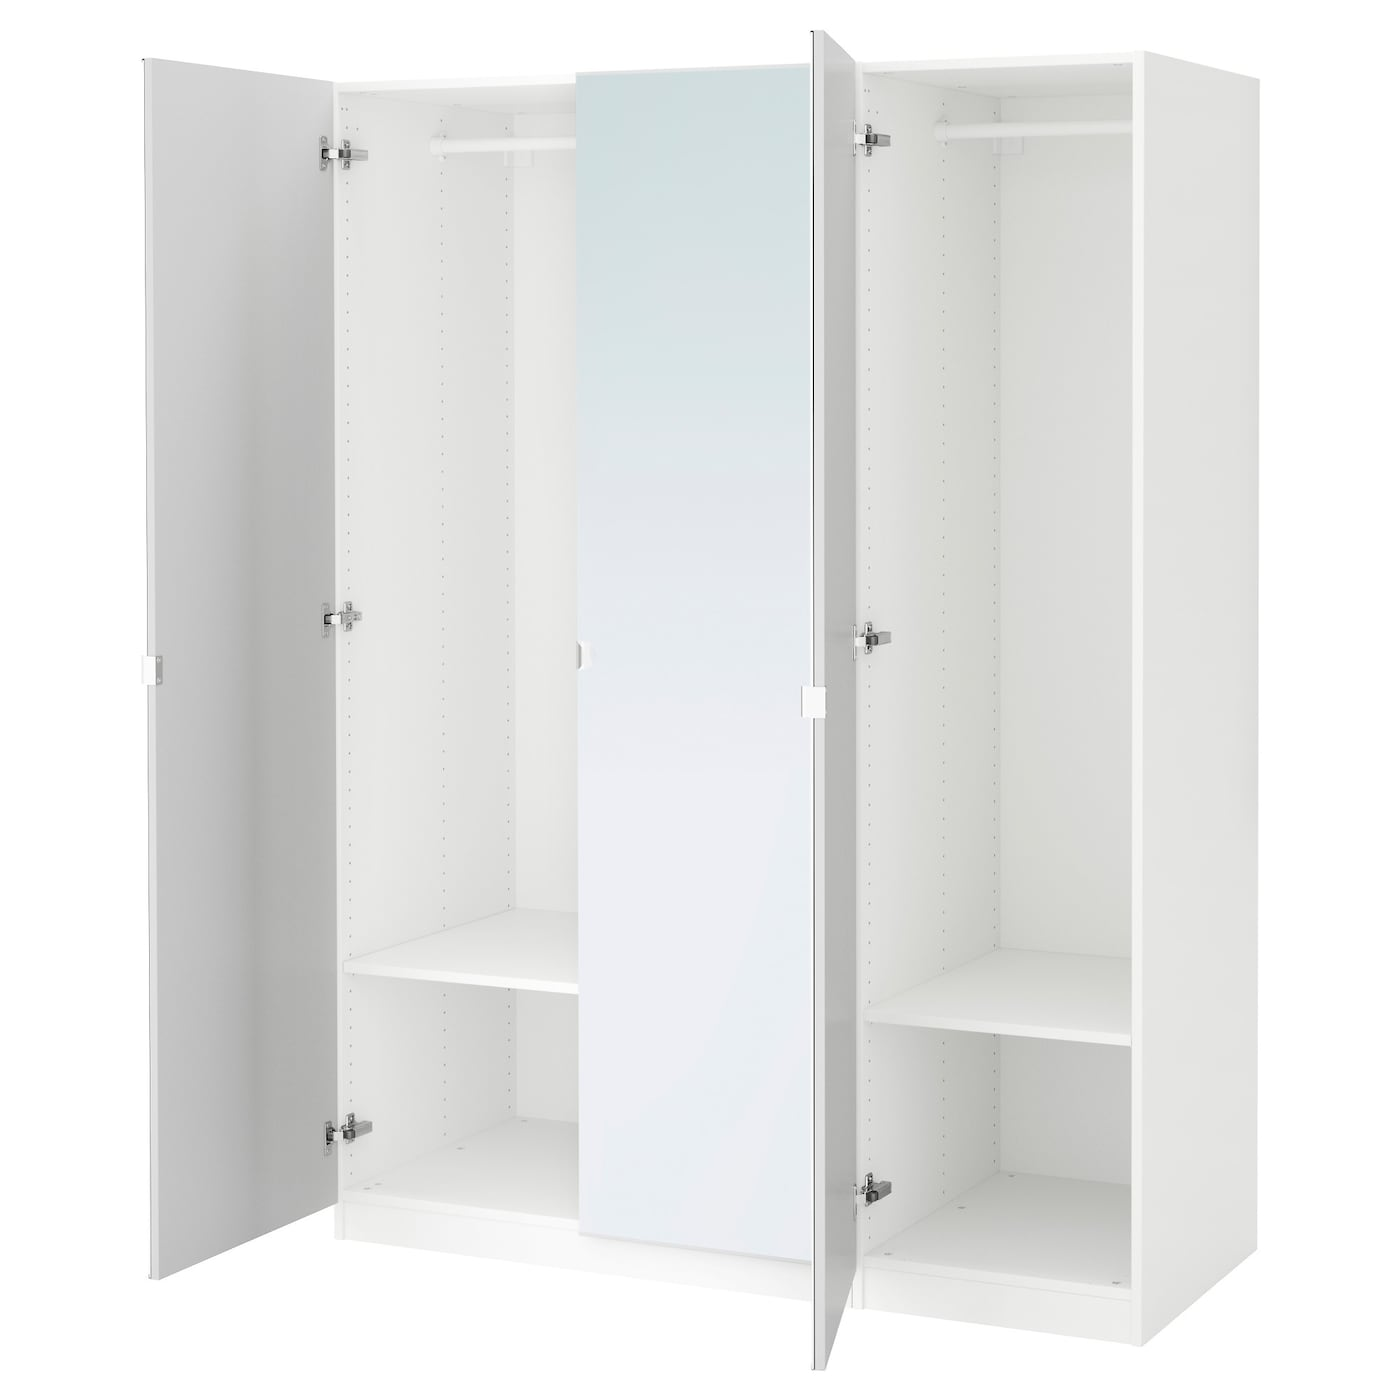 high with pax gloss doors categories hokksund grey white bedroom en departments catalog wardrobe cn null ikea wardrobes light